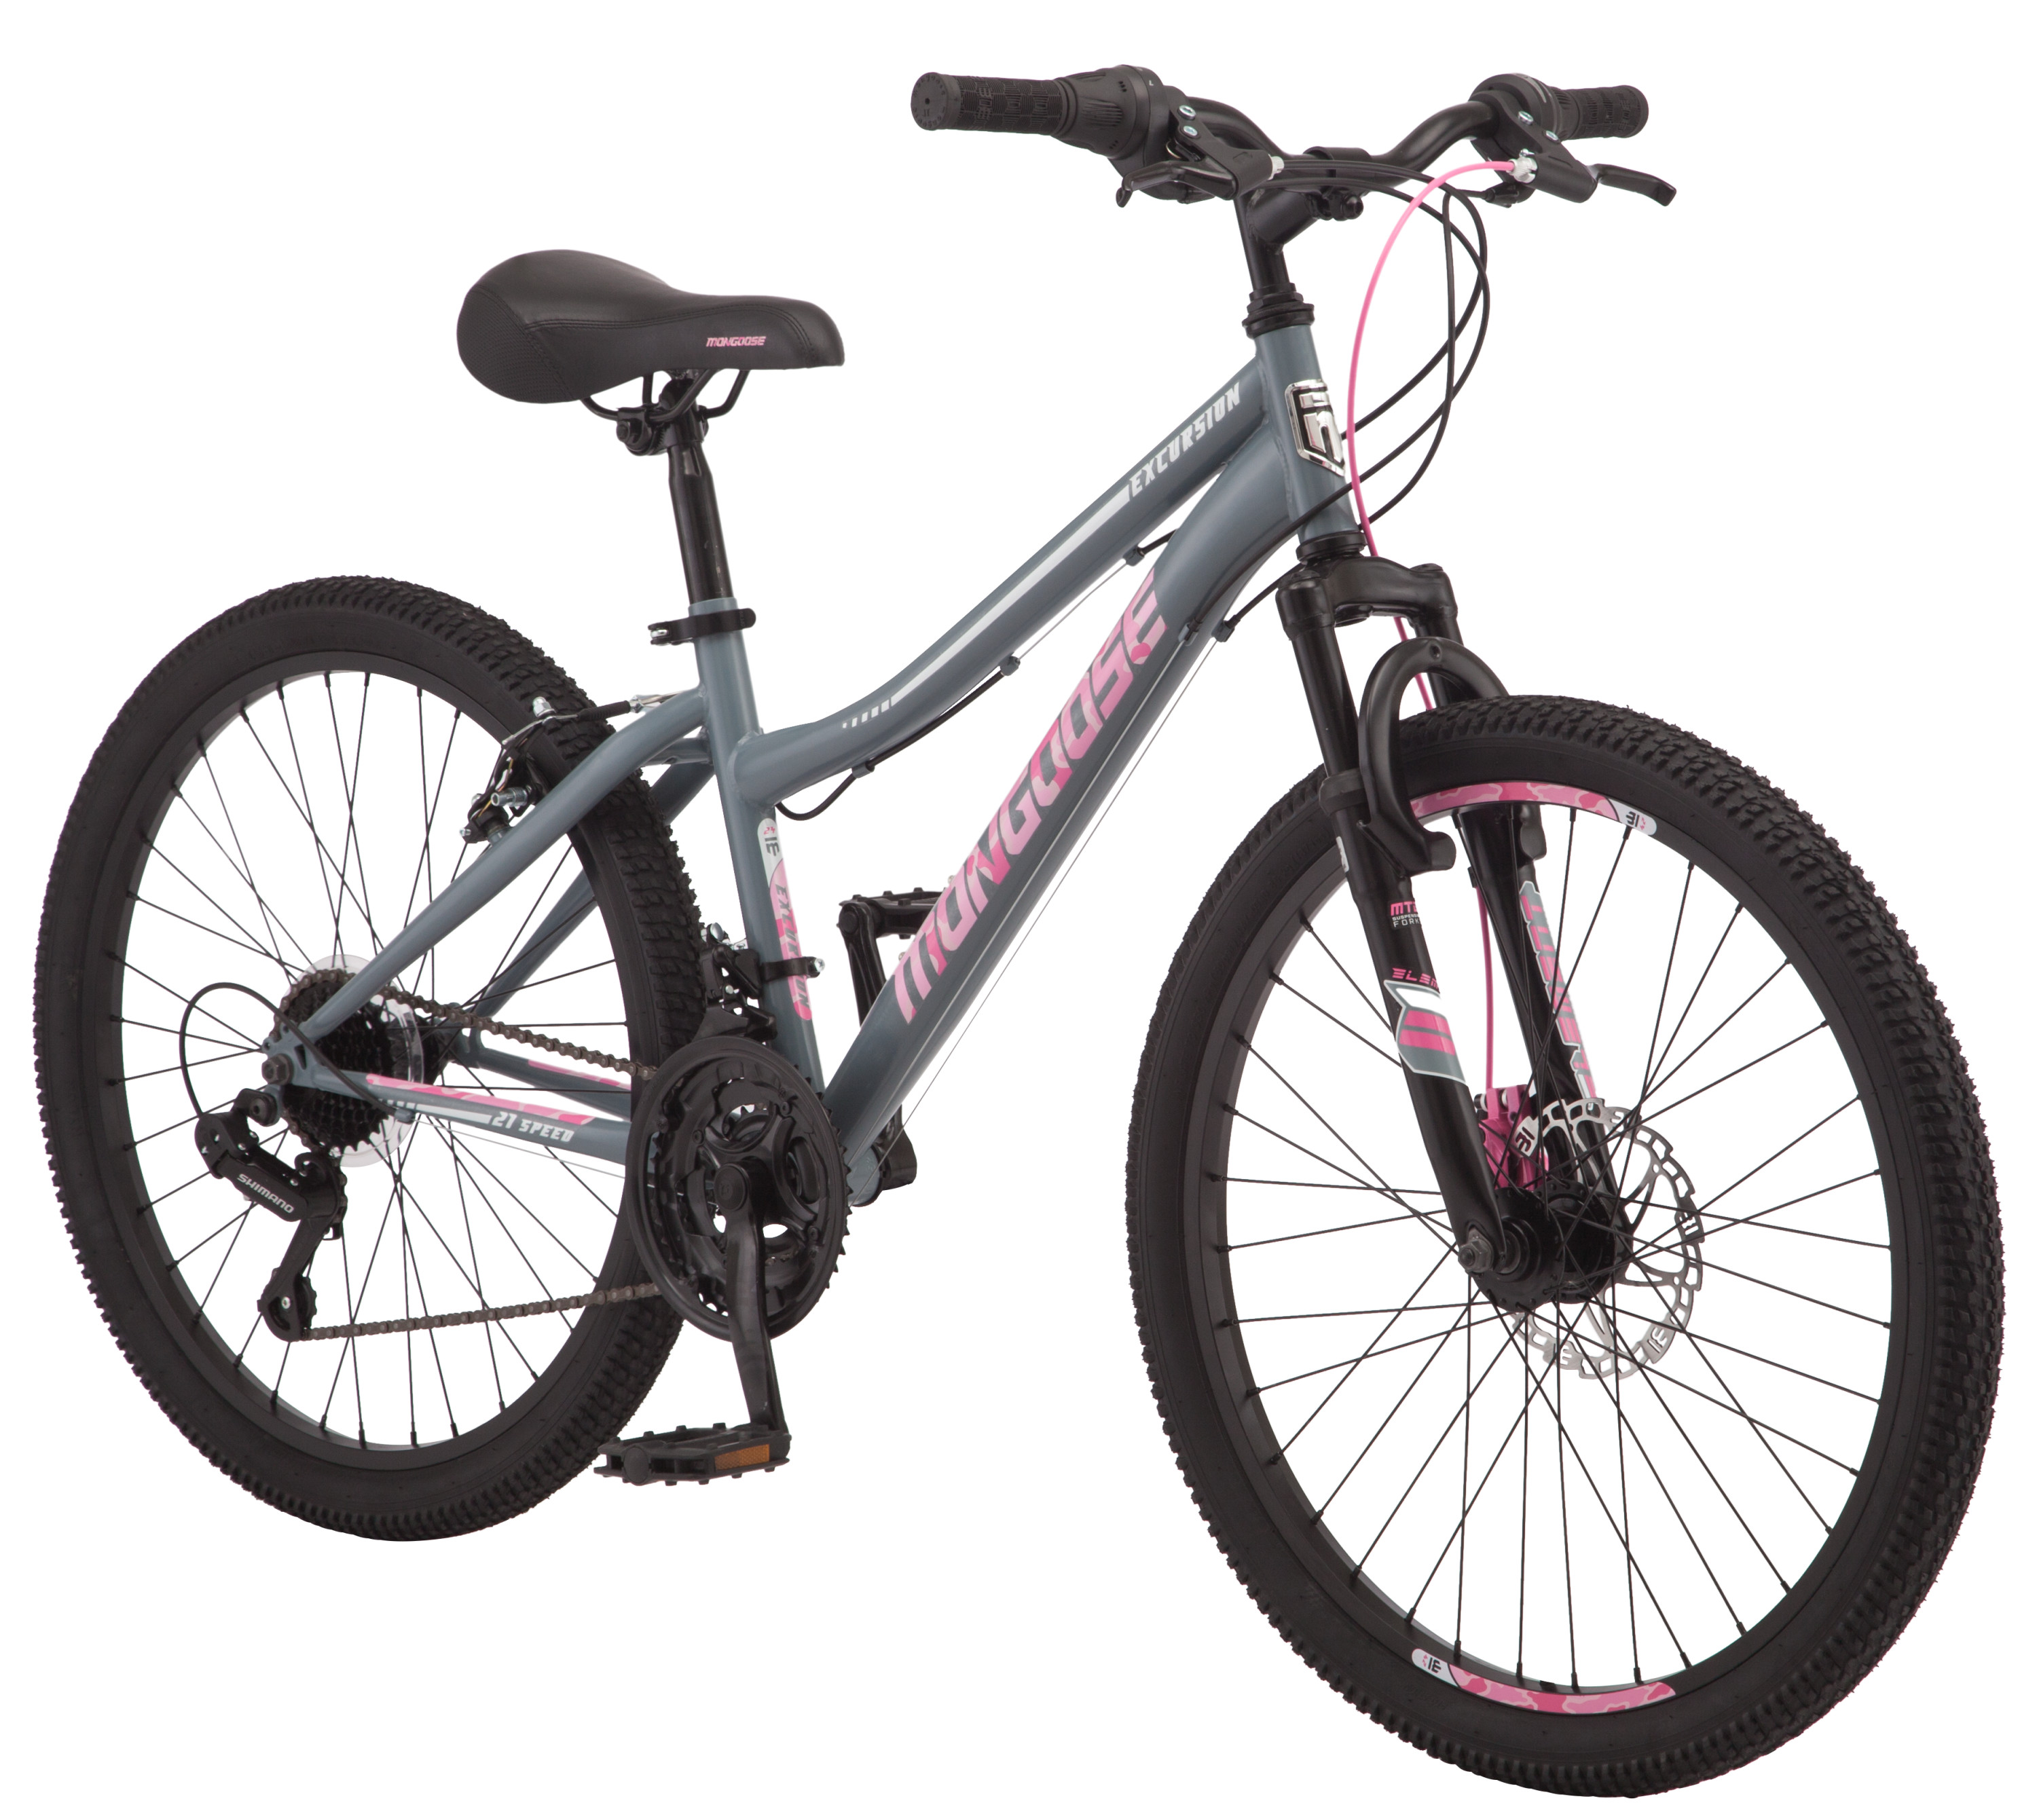 "Mongoose Excursion Mountain Bike, 24"" wheel, 21 speeds, Grey Pink by Pacific Cycle"